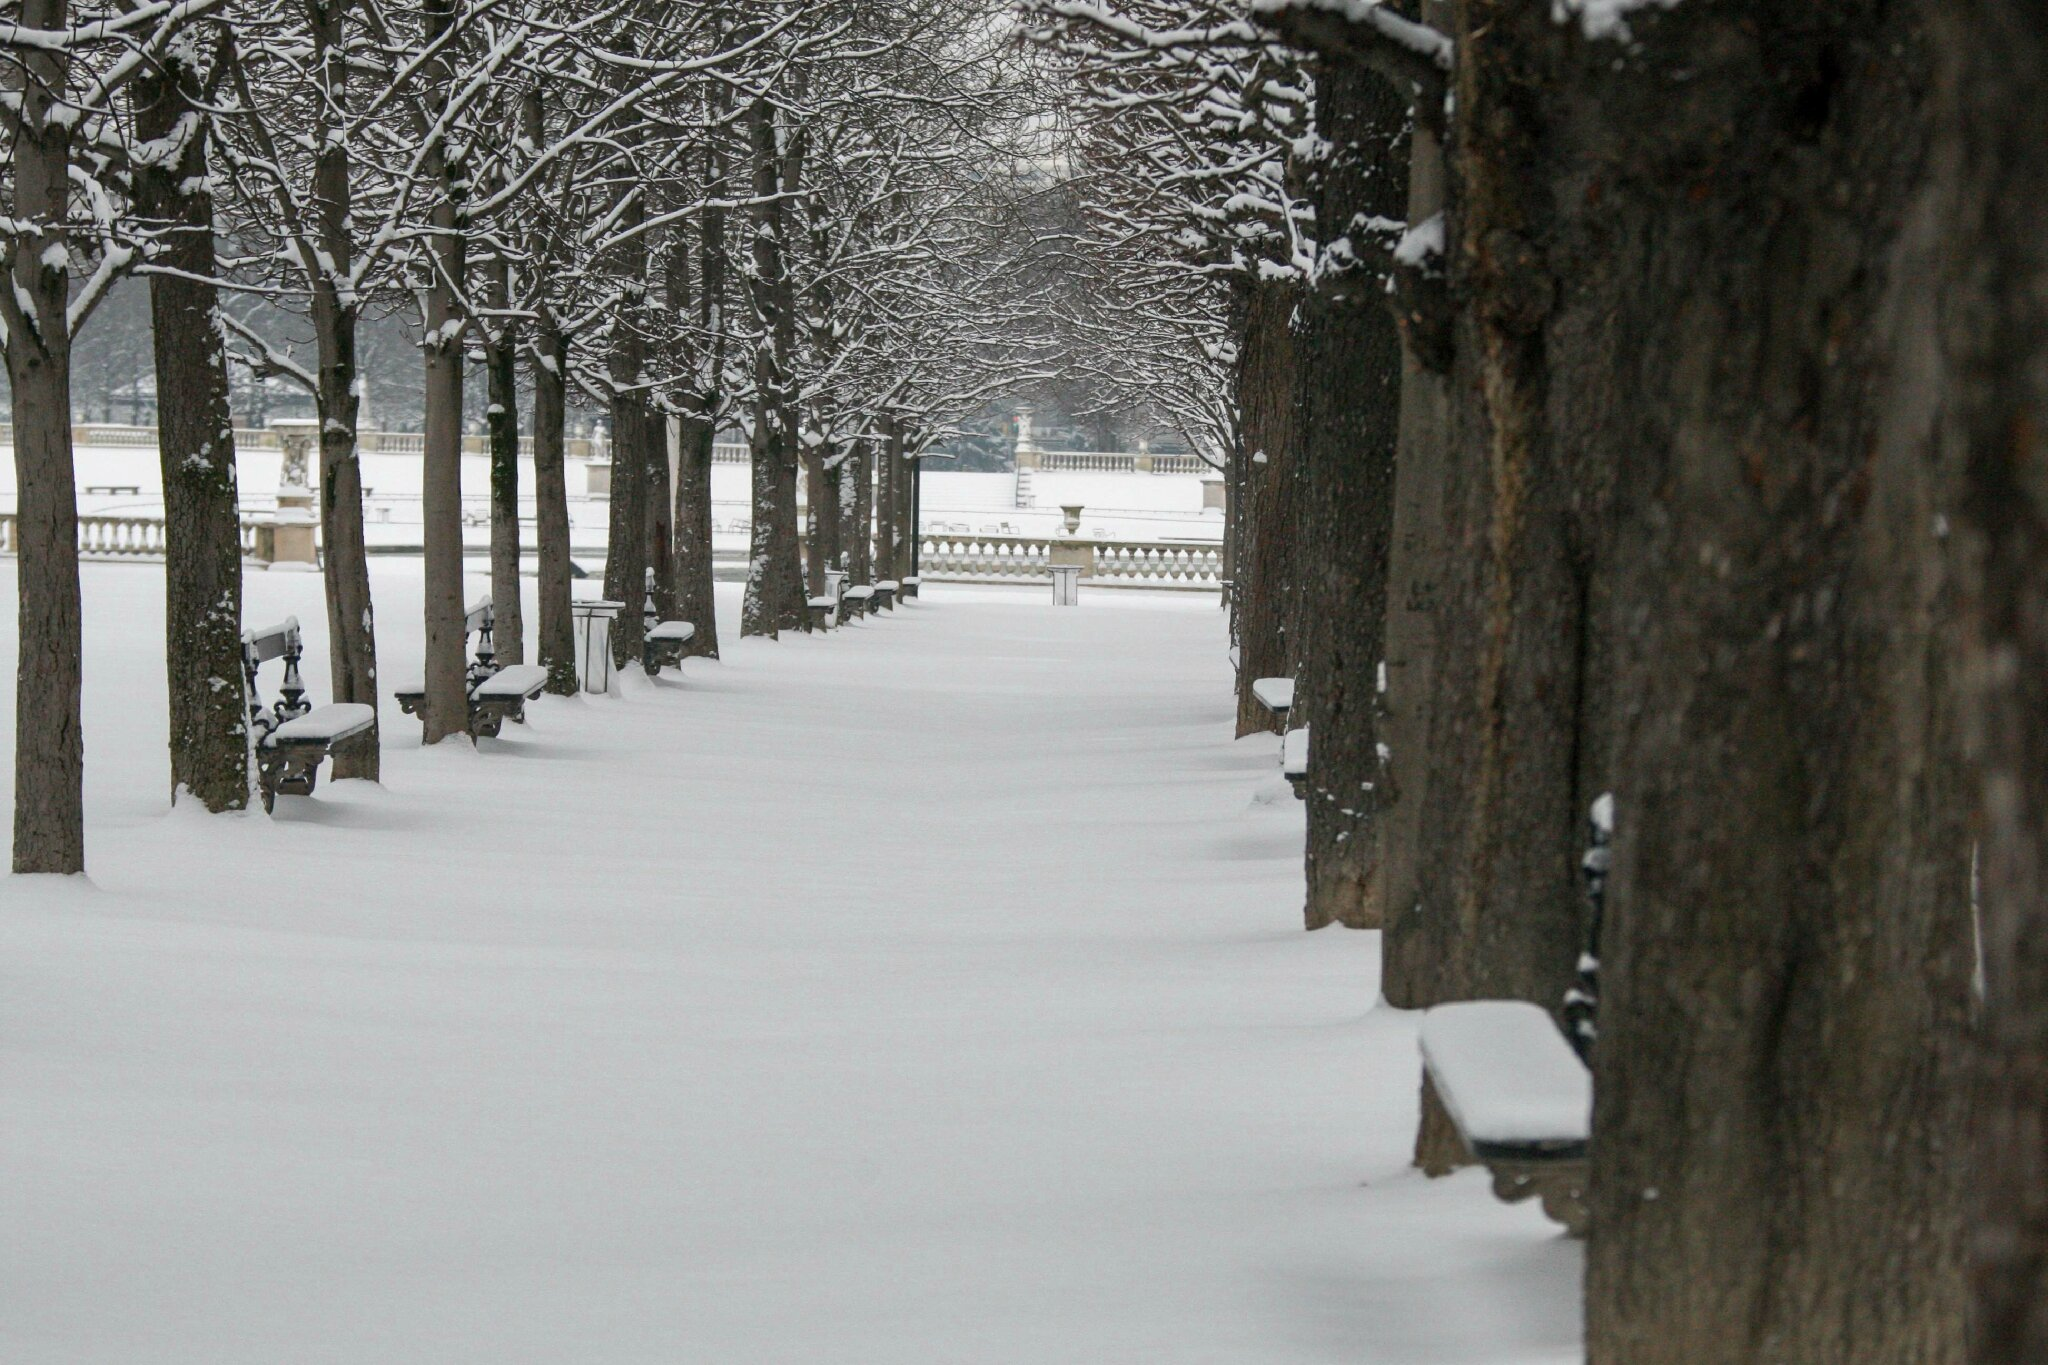 Paris sous la neige. © Photo Michel Stoupak. Sam 19.01.2013, 09:24.